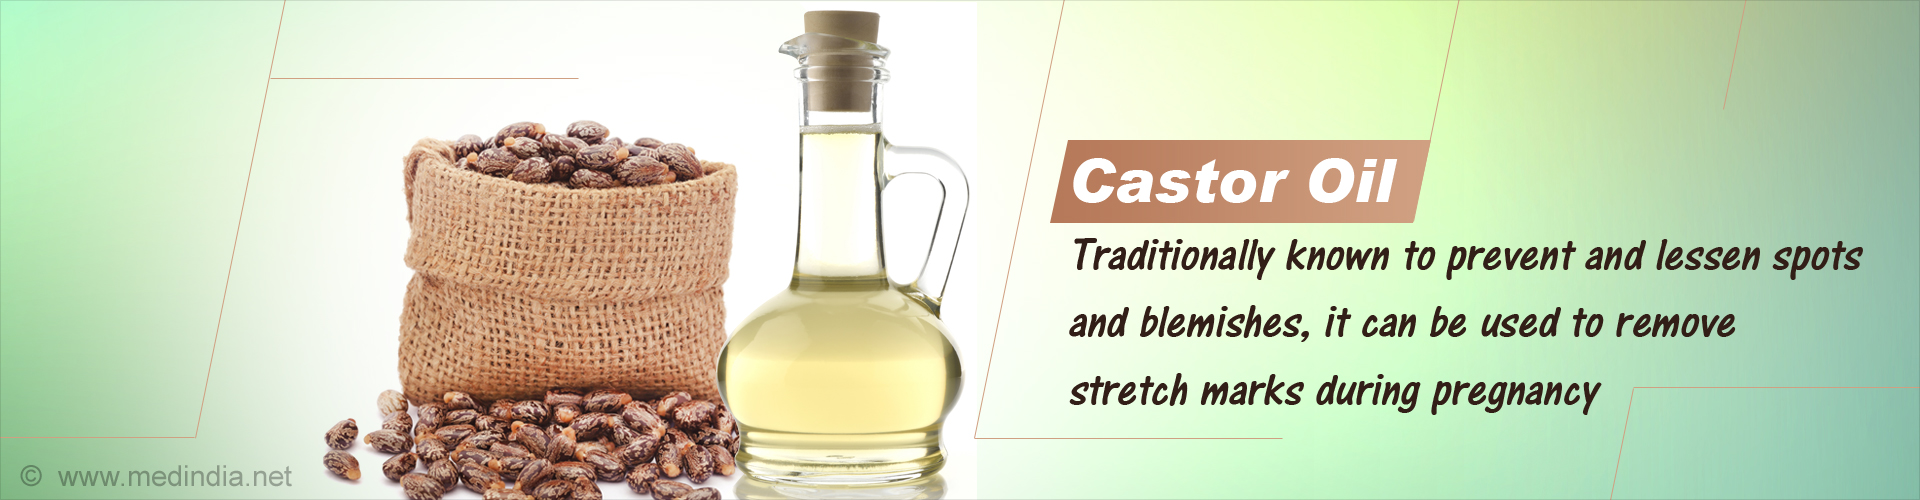 Castor Oil Traditionally known to prevent and lessen spots and blemishes, it can be used to remove stretch marks during pregnancy